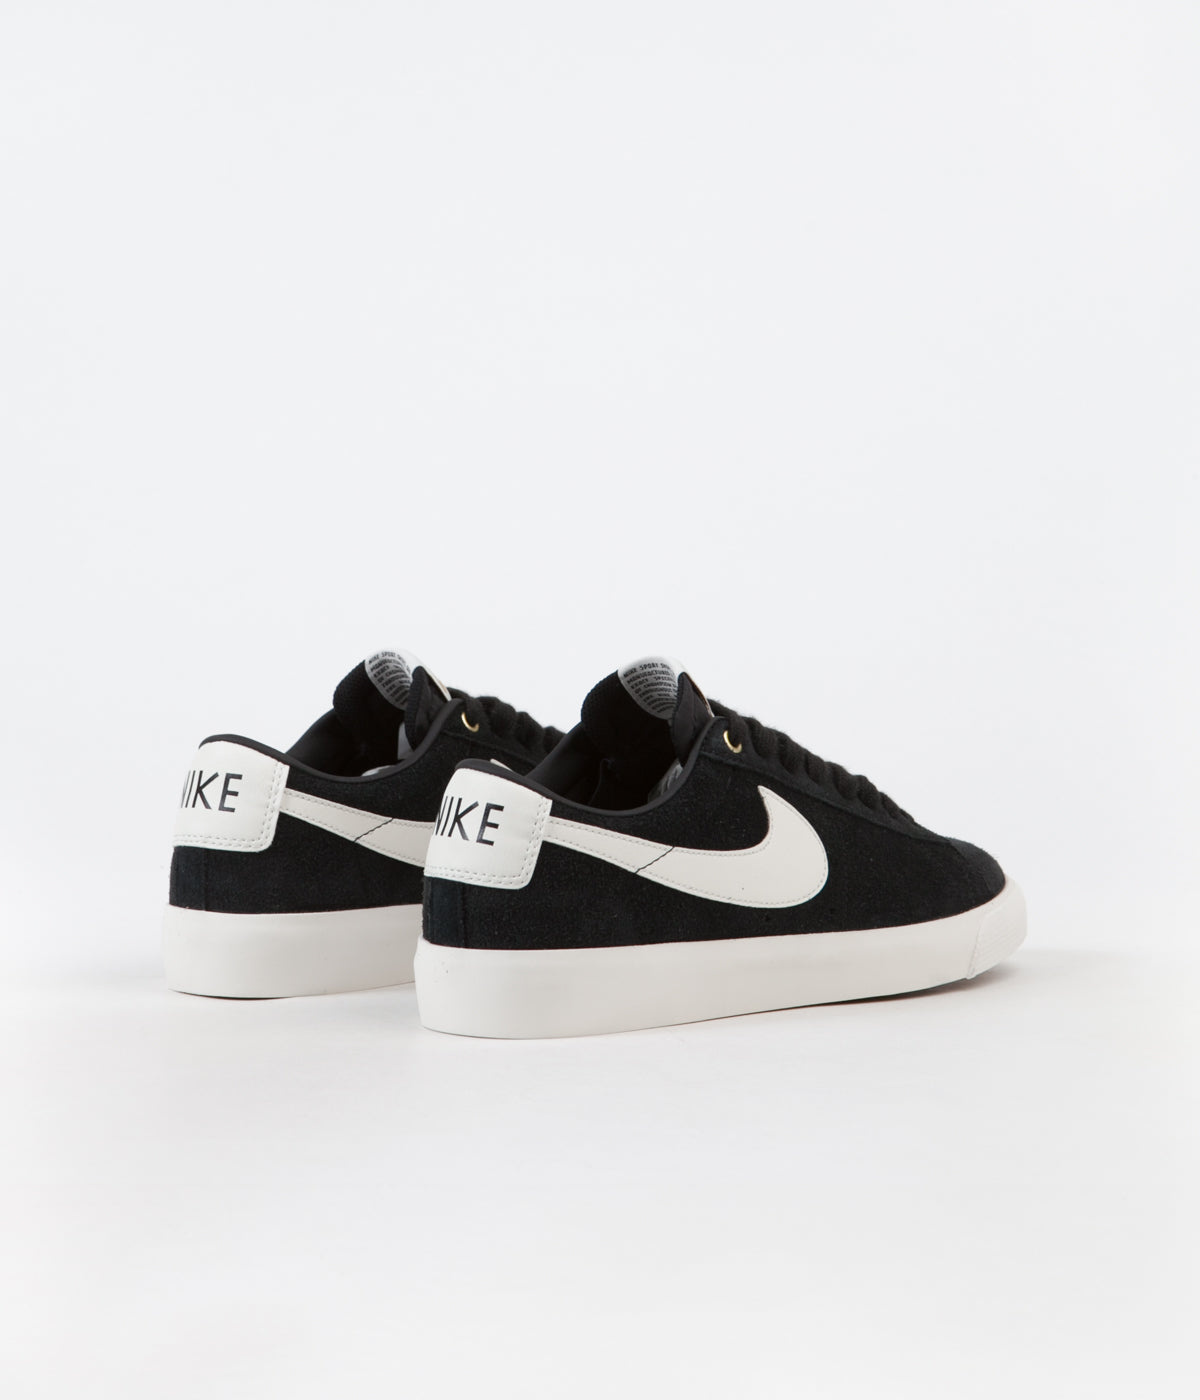 new product 382d6 caad1 Nike SB Blazer Low GT Shoes - Black / Sail | Flatspot